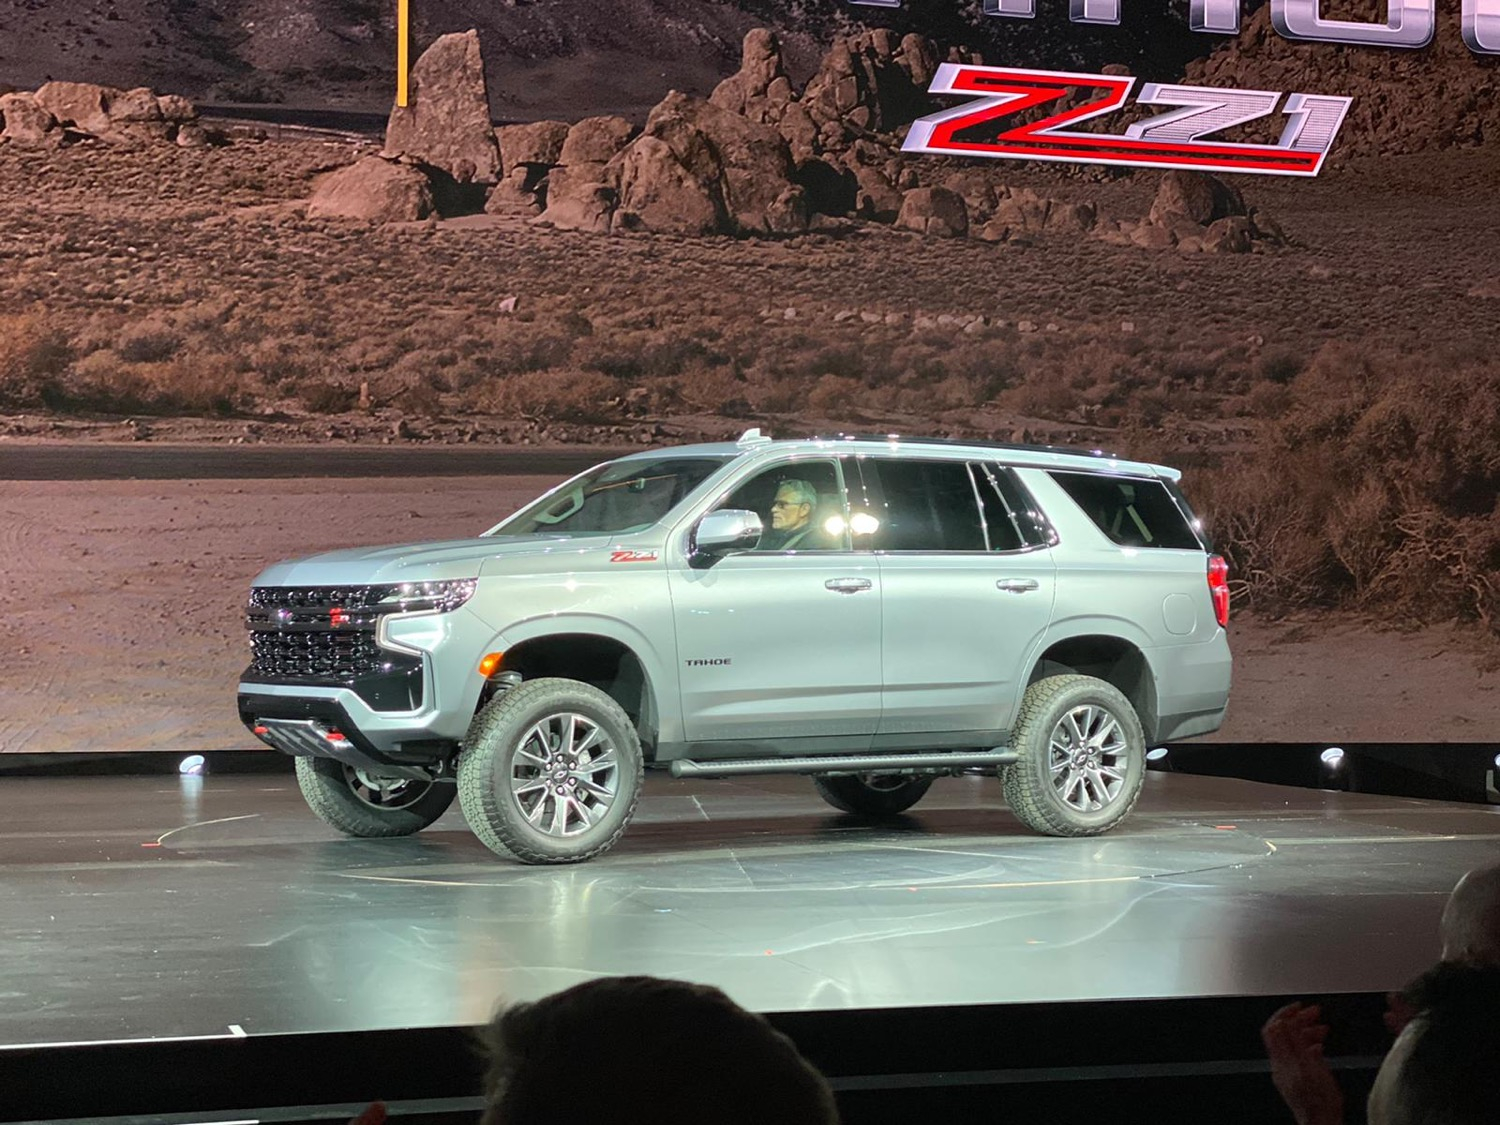 2021 Chevrolet Tahoe Info, Specs, Wiki | Gm Authority 2021 Chevy Tahoe Lt Pictures, Package, 2Wd